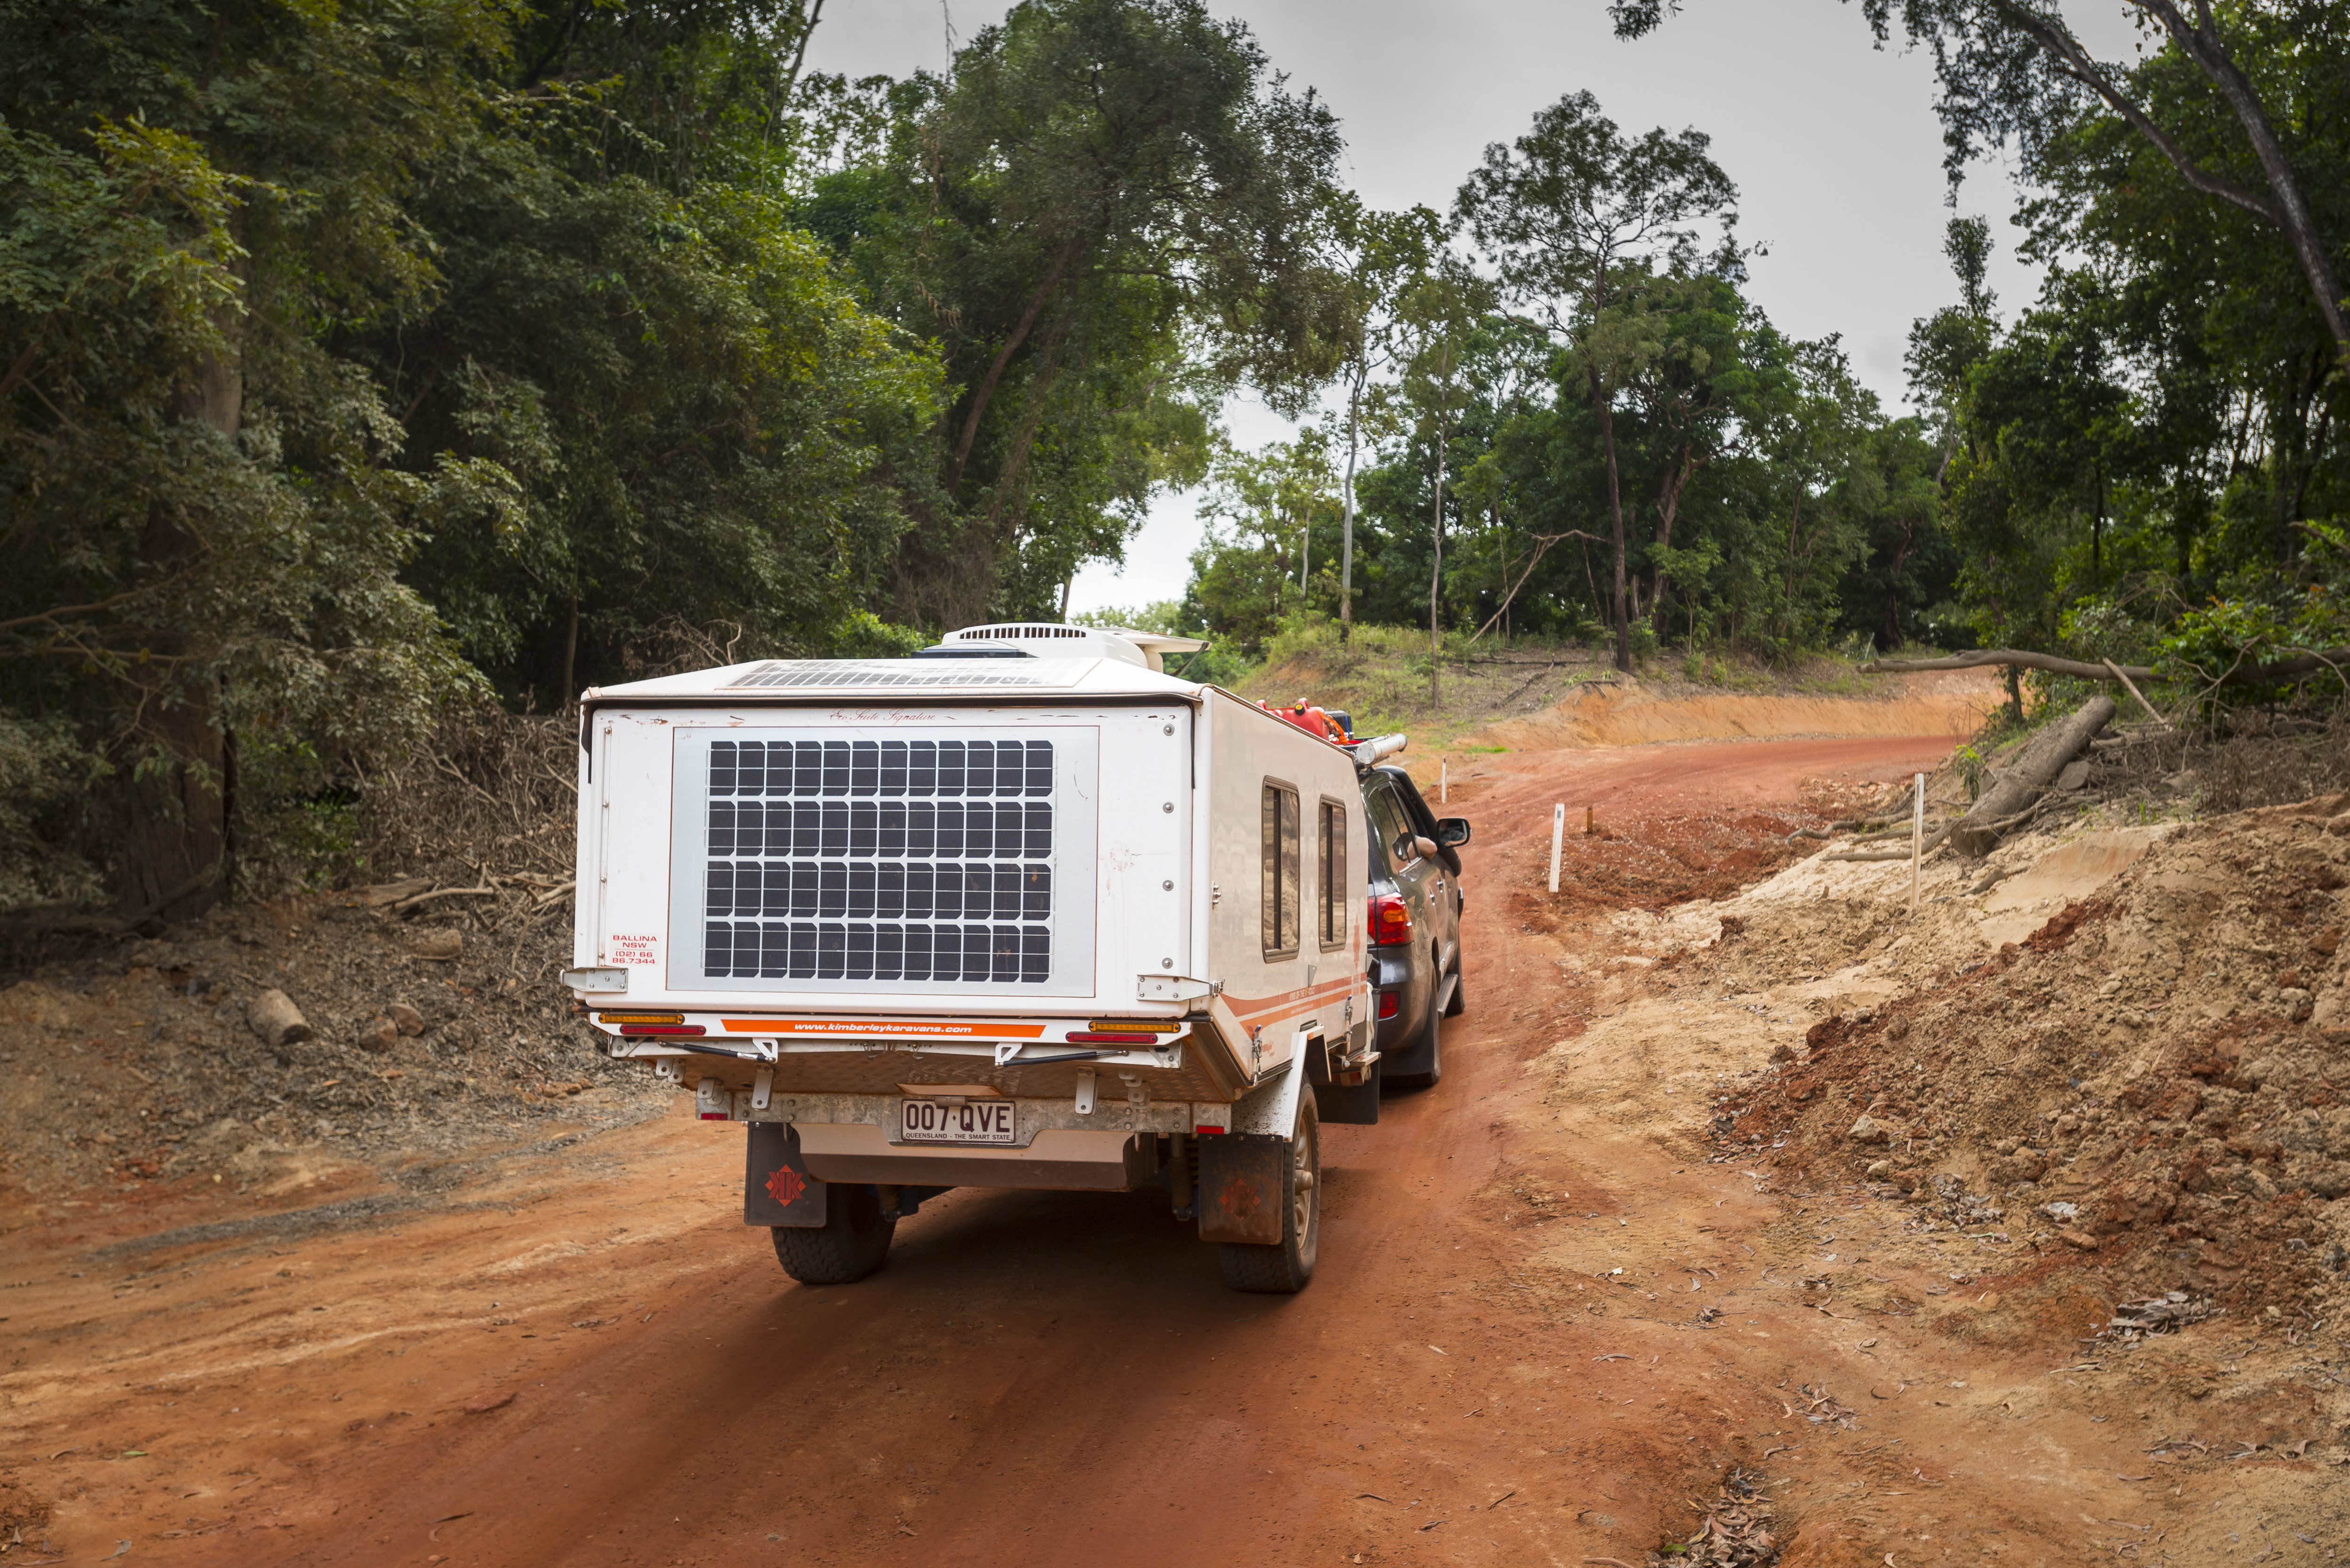 3.Whether you mount your panels on top of your vehicle or rig, or run out a free-standing unit in camp, you simply can't beat a solar panel for clean, fuel-free power